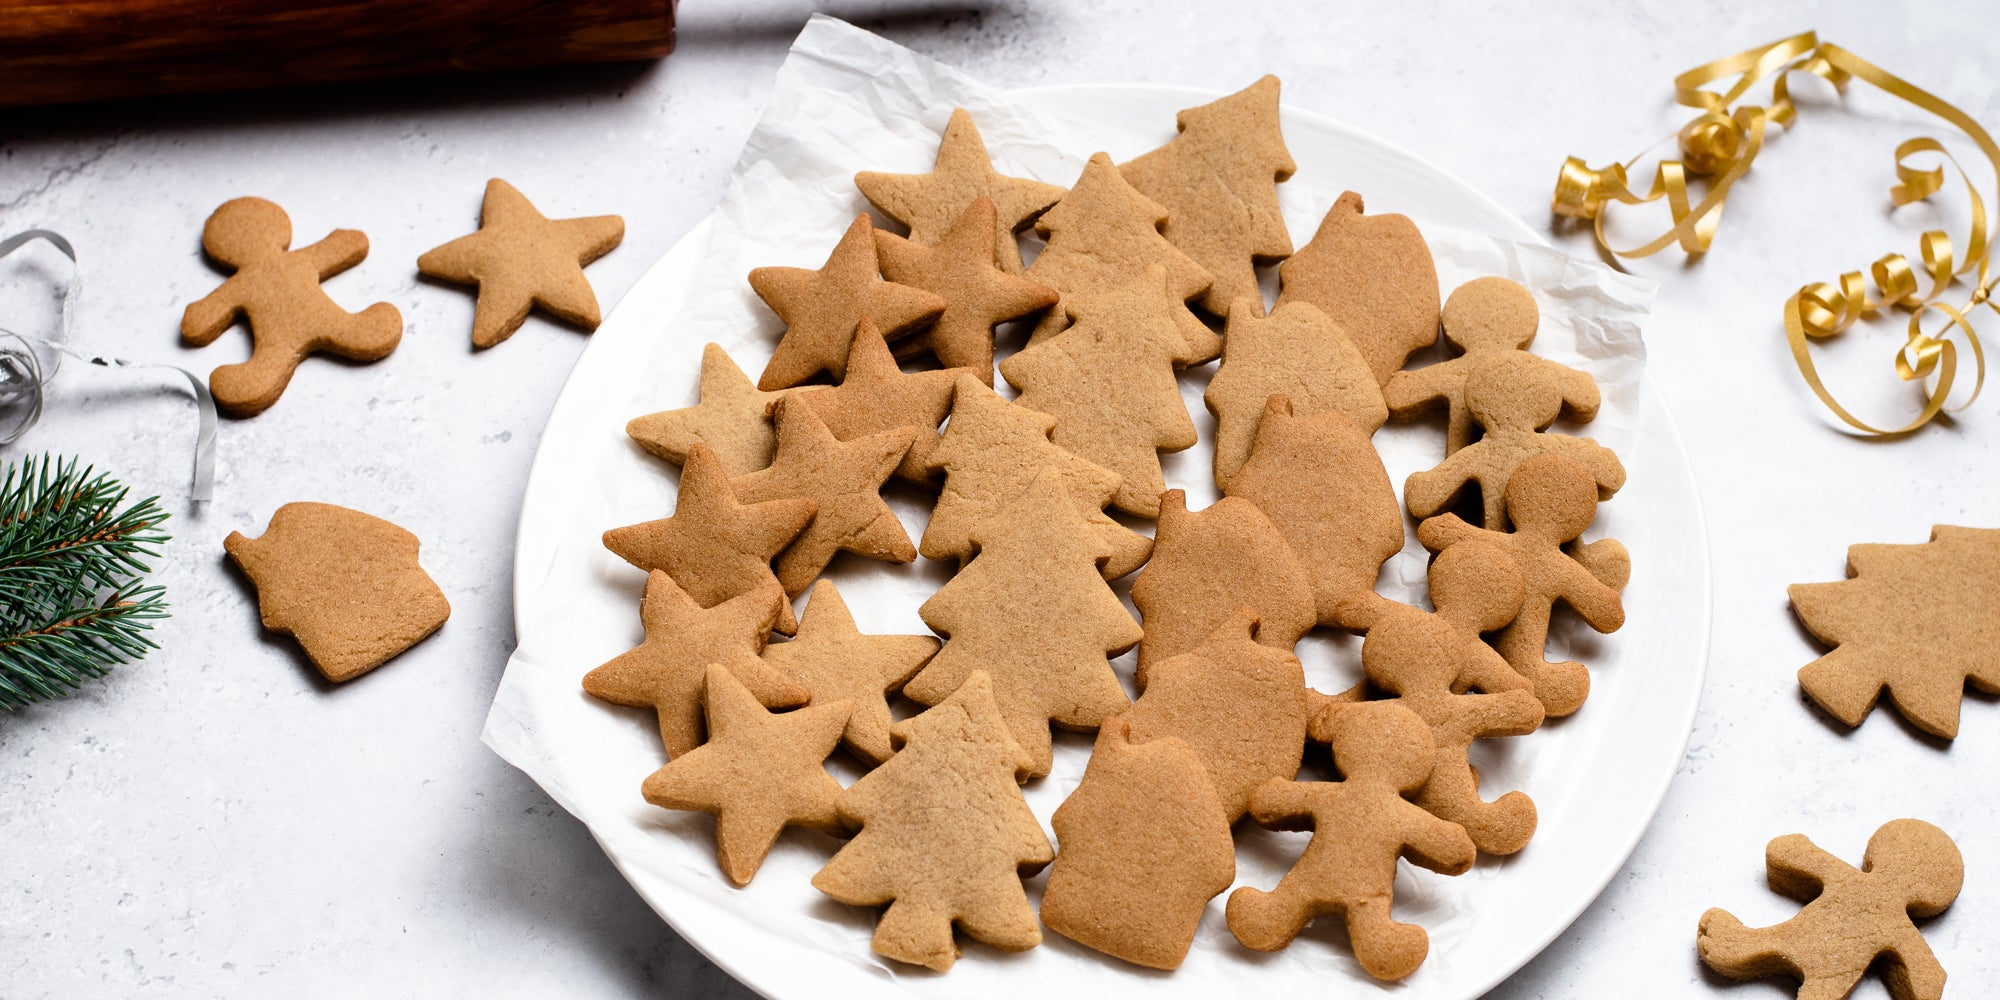 A batch of gingerbread cookies baked from Gingerbread Dough, next to gold ribbon and pine leaves